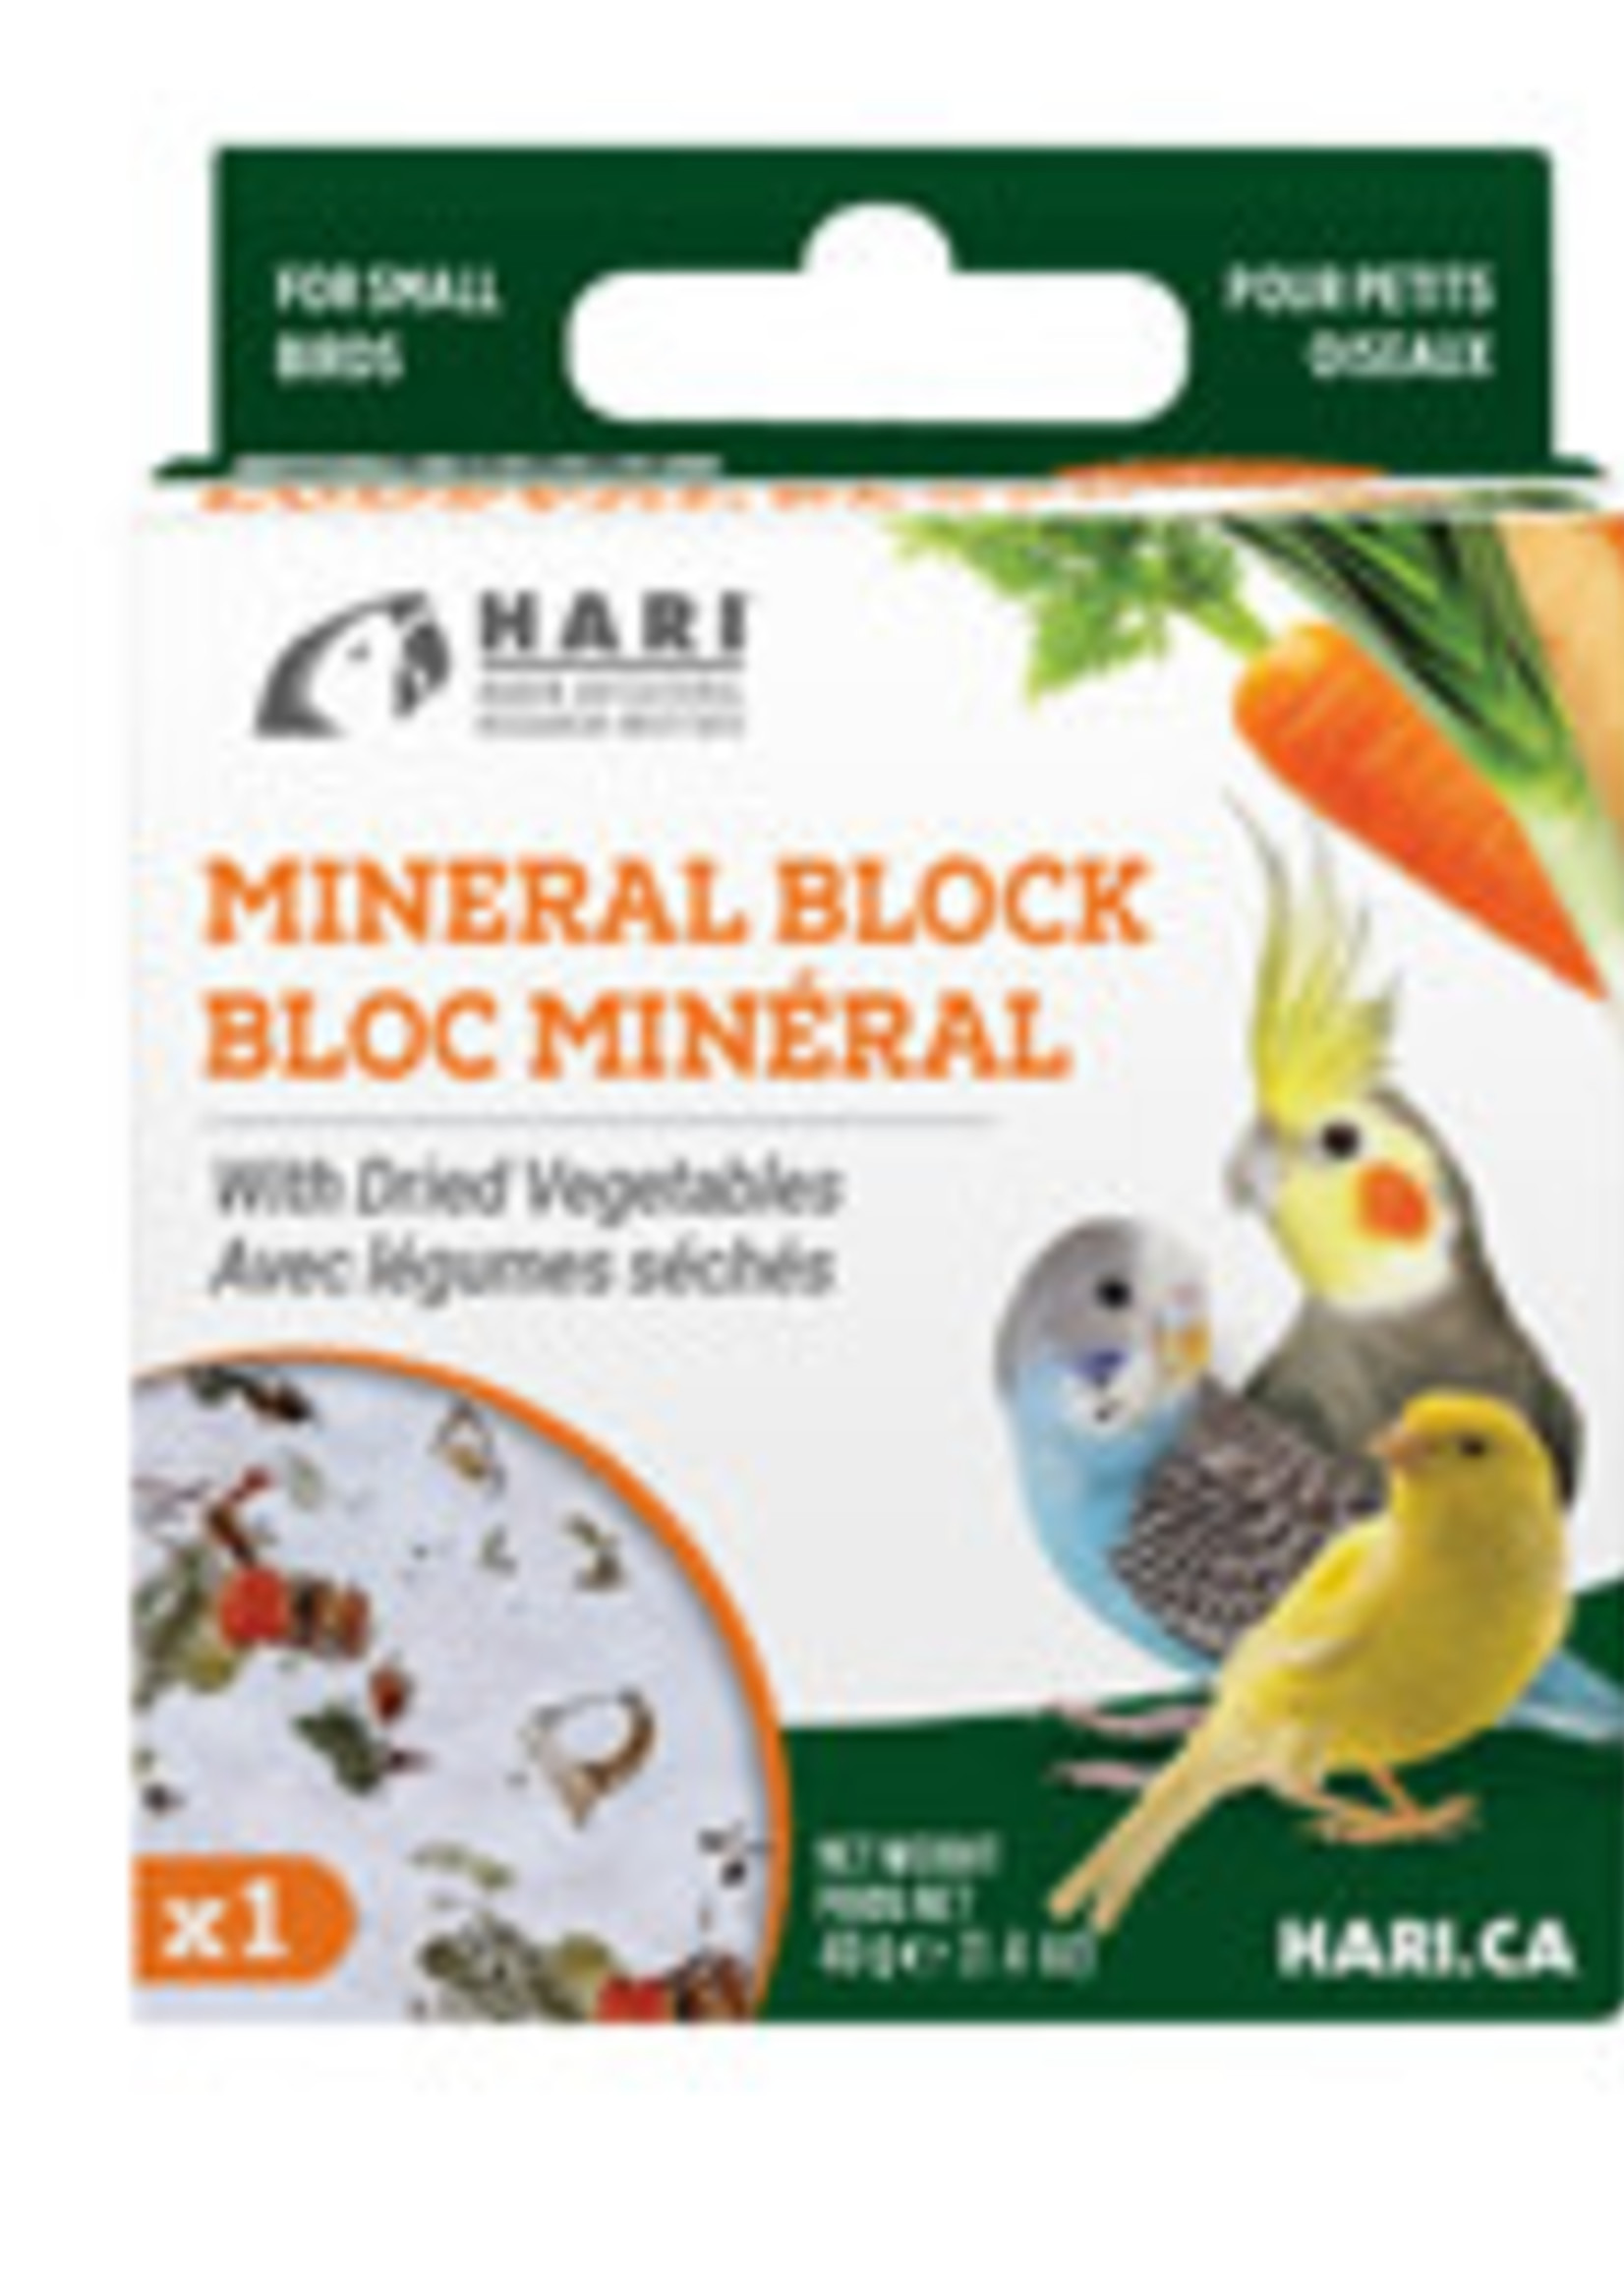 HARI Mineral Block for Small Birds - Dried Vegetables - 40 g - 1 pack